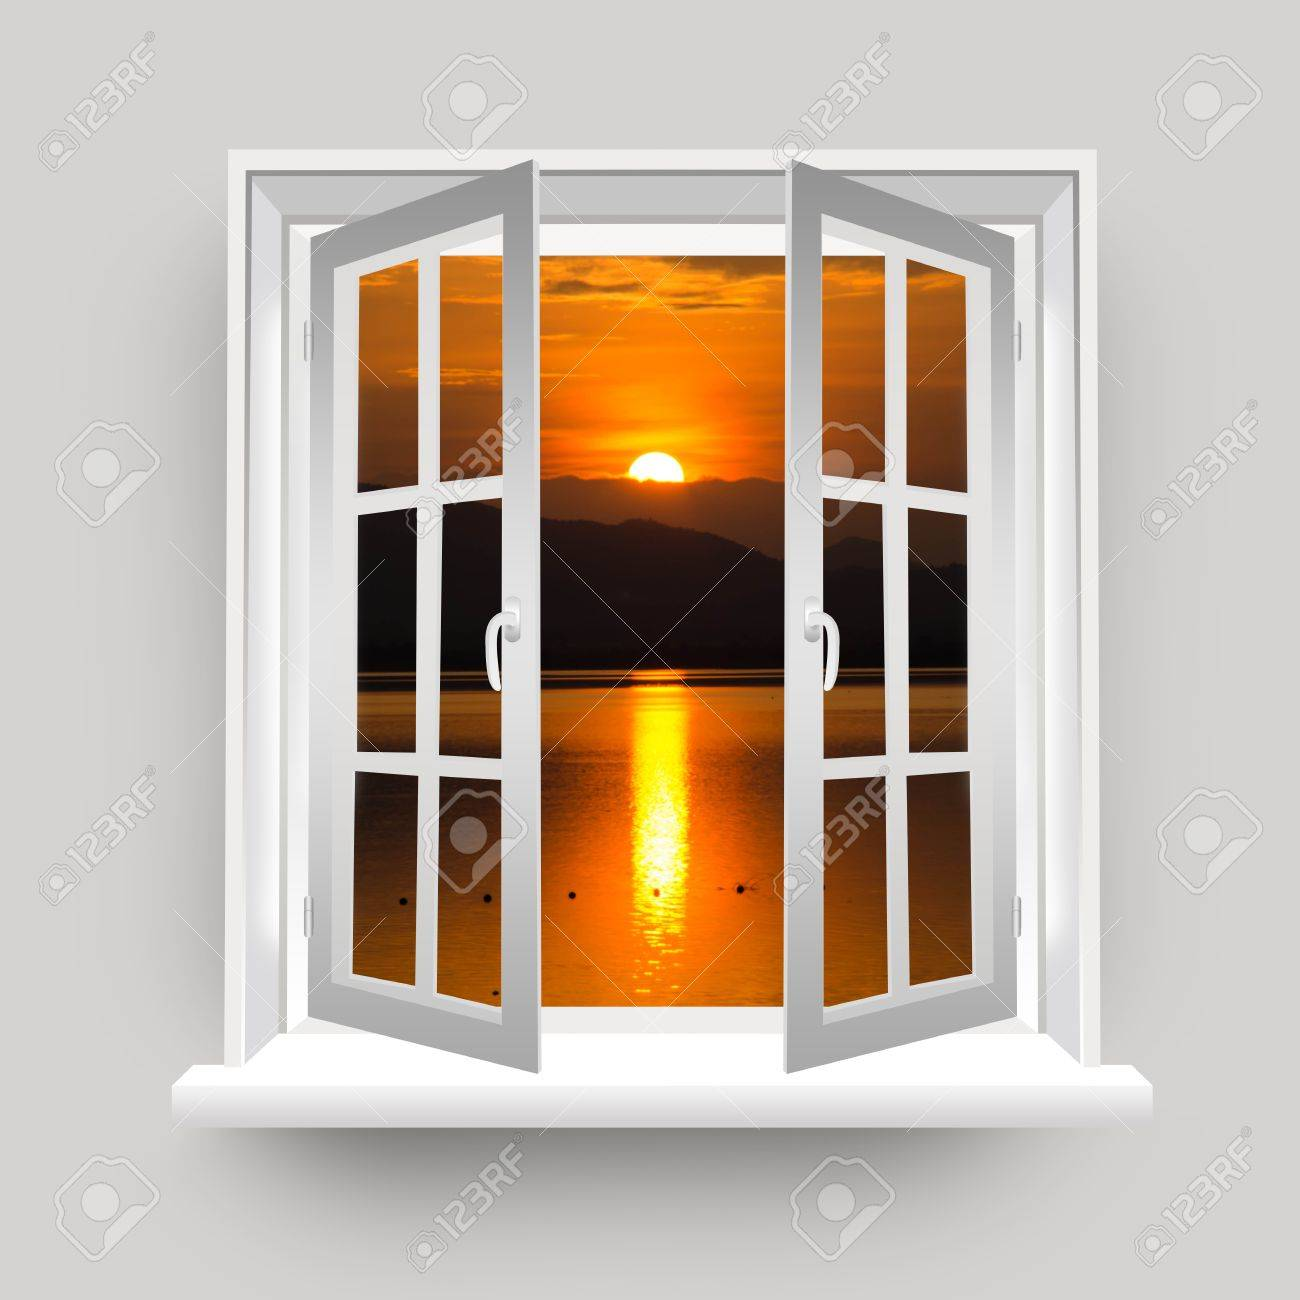 Open Window to The Lake View With Beautiful Sunset Stock Photo - 17404347